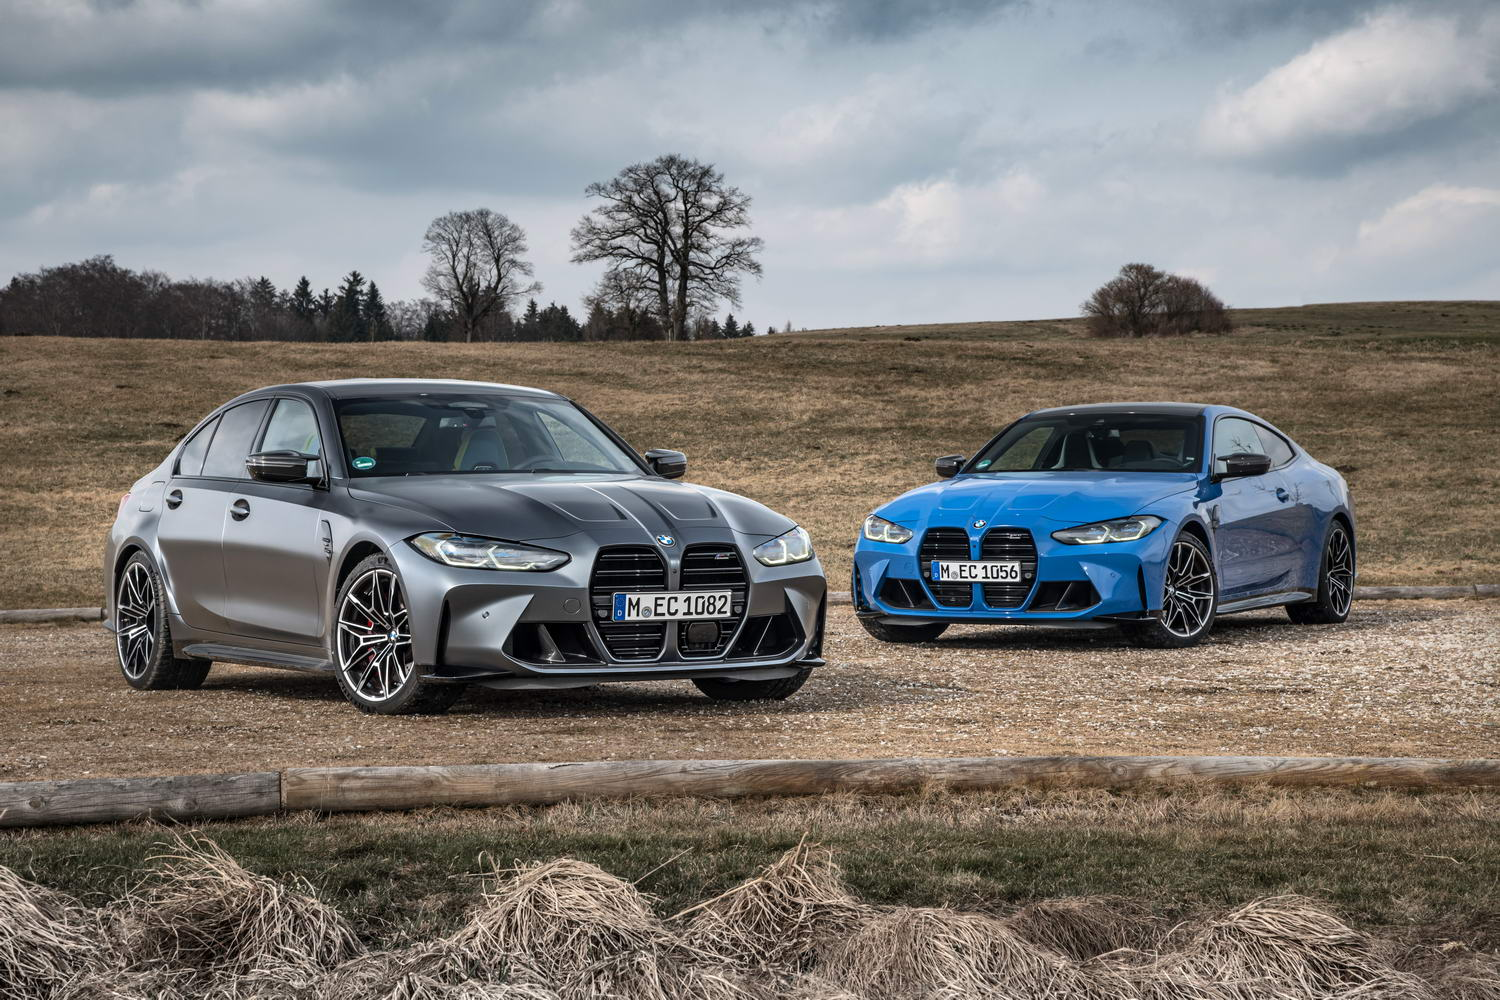 Car News | BMW M3 and M4 get all-wheel drive | CompleteCar.ie